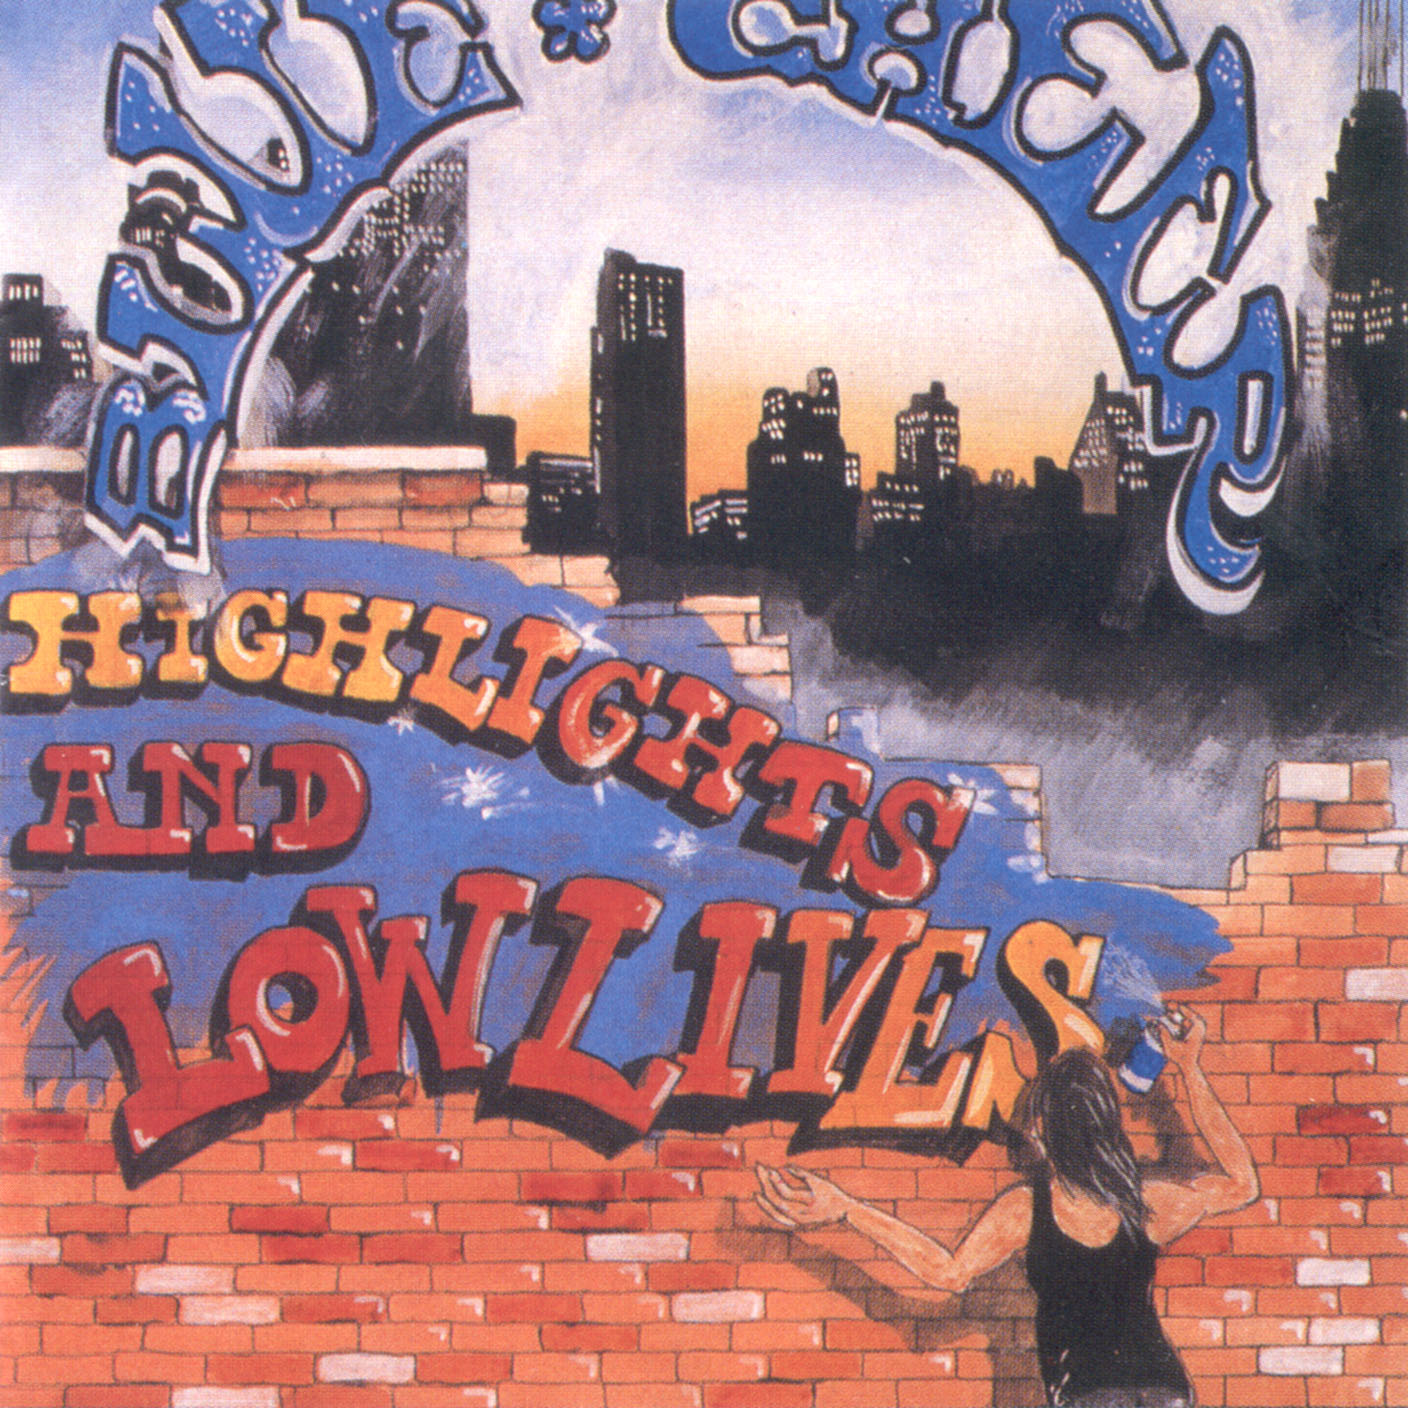 Blue Cheer - Highlights And Lowlives - 1990